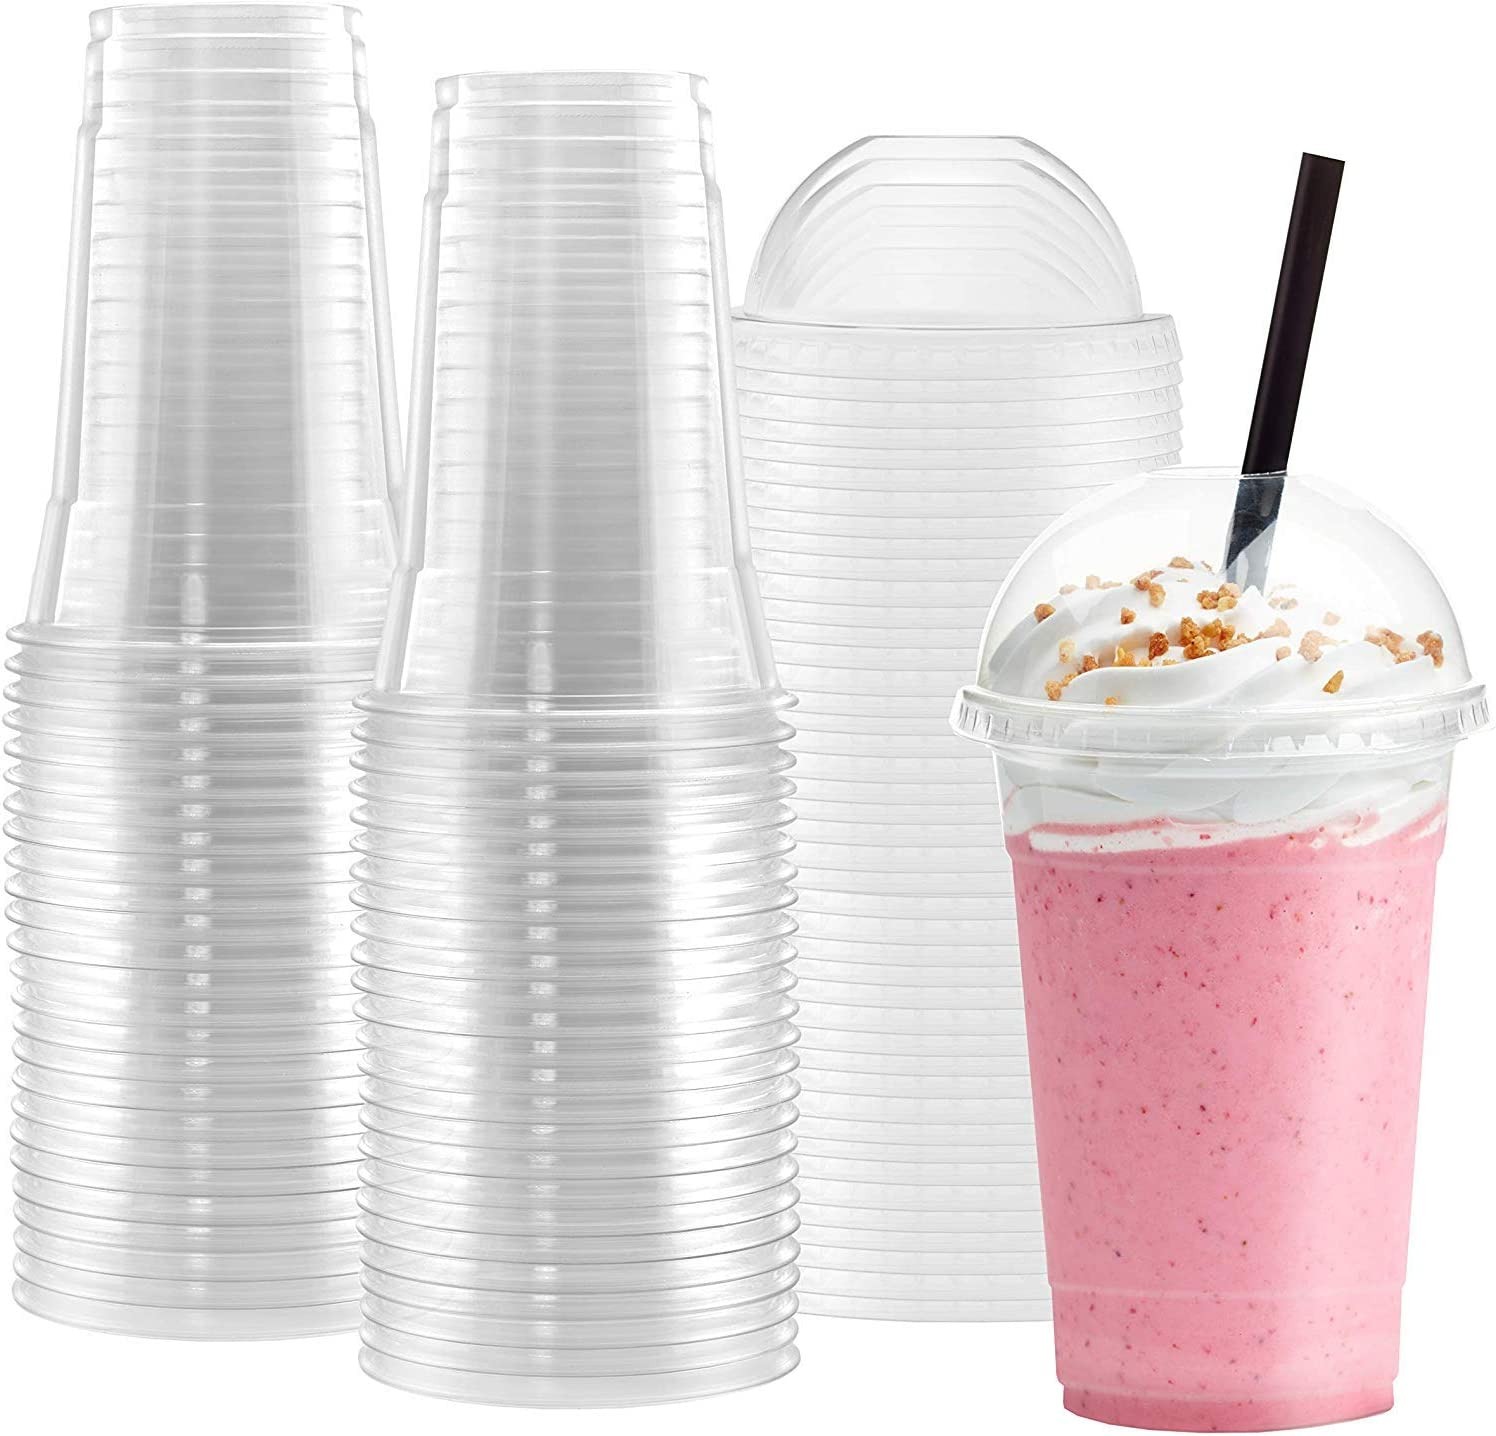 Netko Plastic Cups With DomeLids 50 Sets Of 16 OZ cups with lids